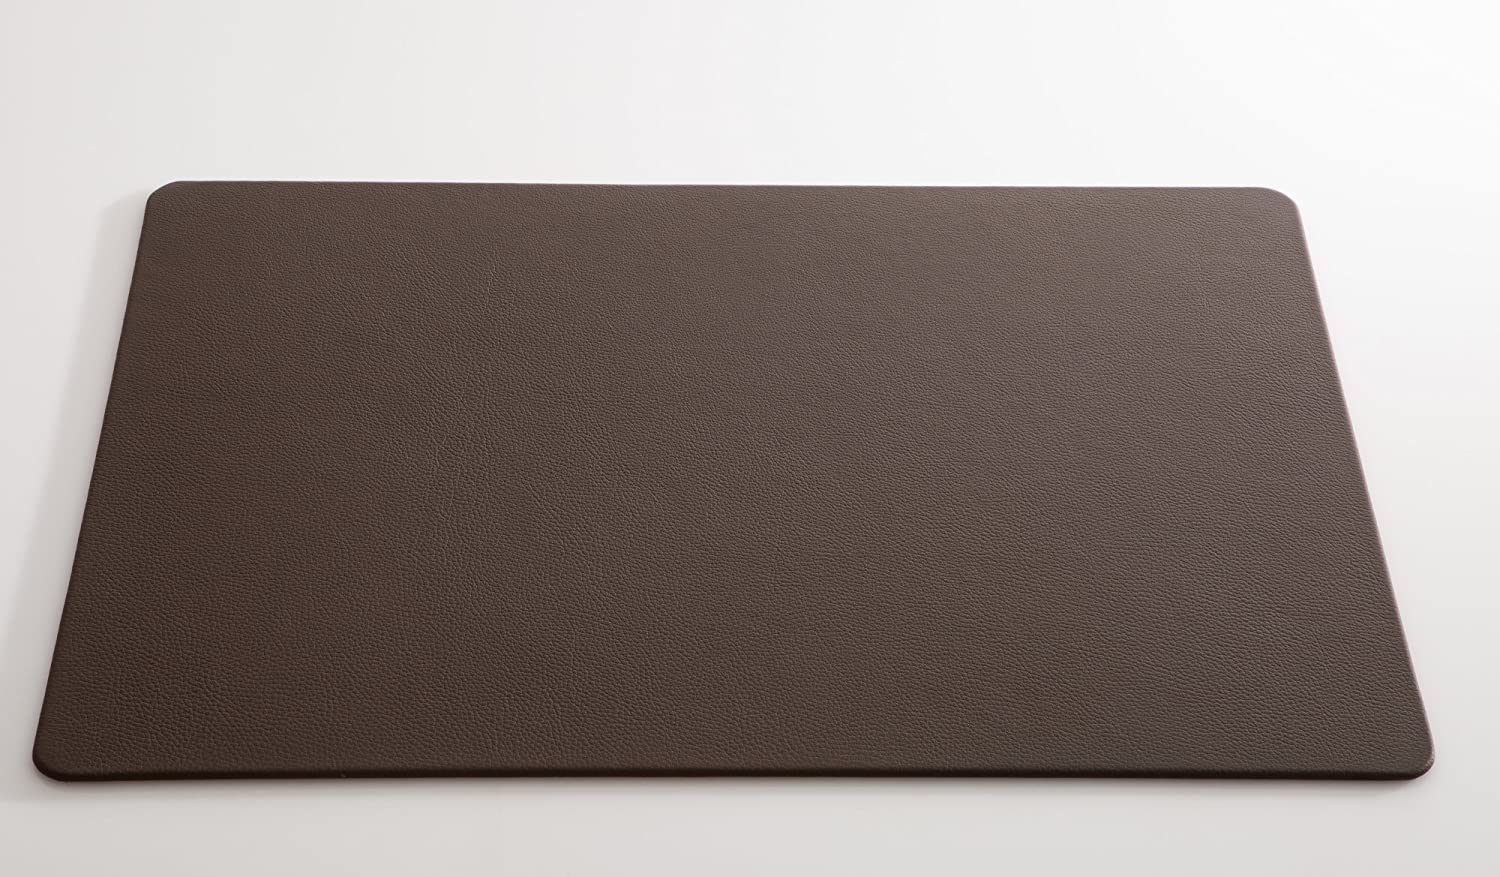 PU Leather Desk Pad Mouse Pad Oversized 39.4x15.7inch Office Desk Mat-Dark Brown